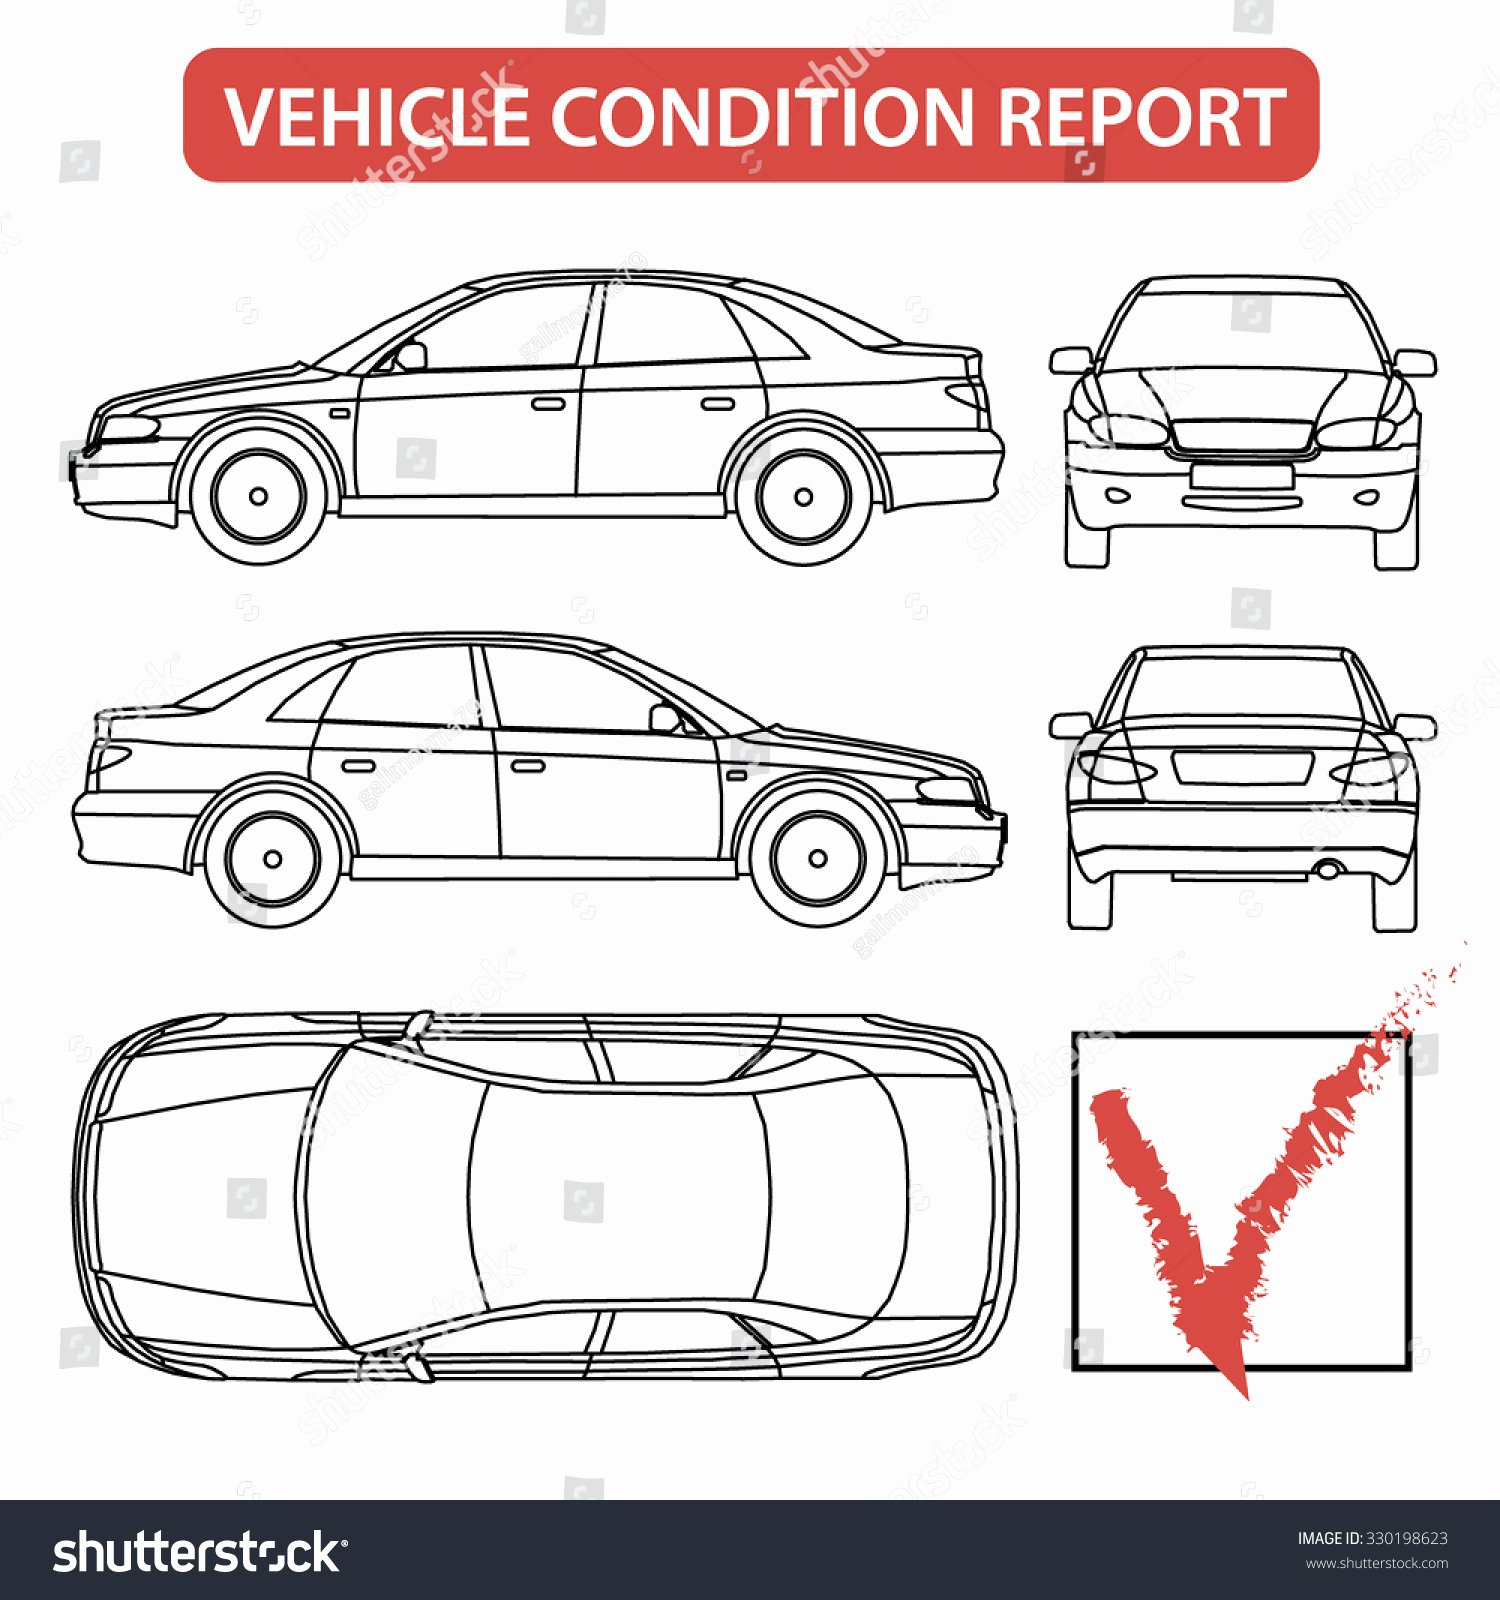 Vehicle Check Sheet Template Inspirational Car Condition form Vehicle Checklist Auto Stock Vector